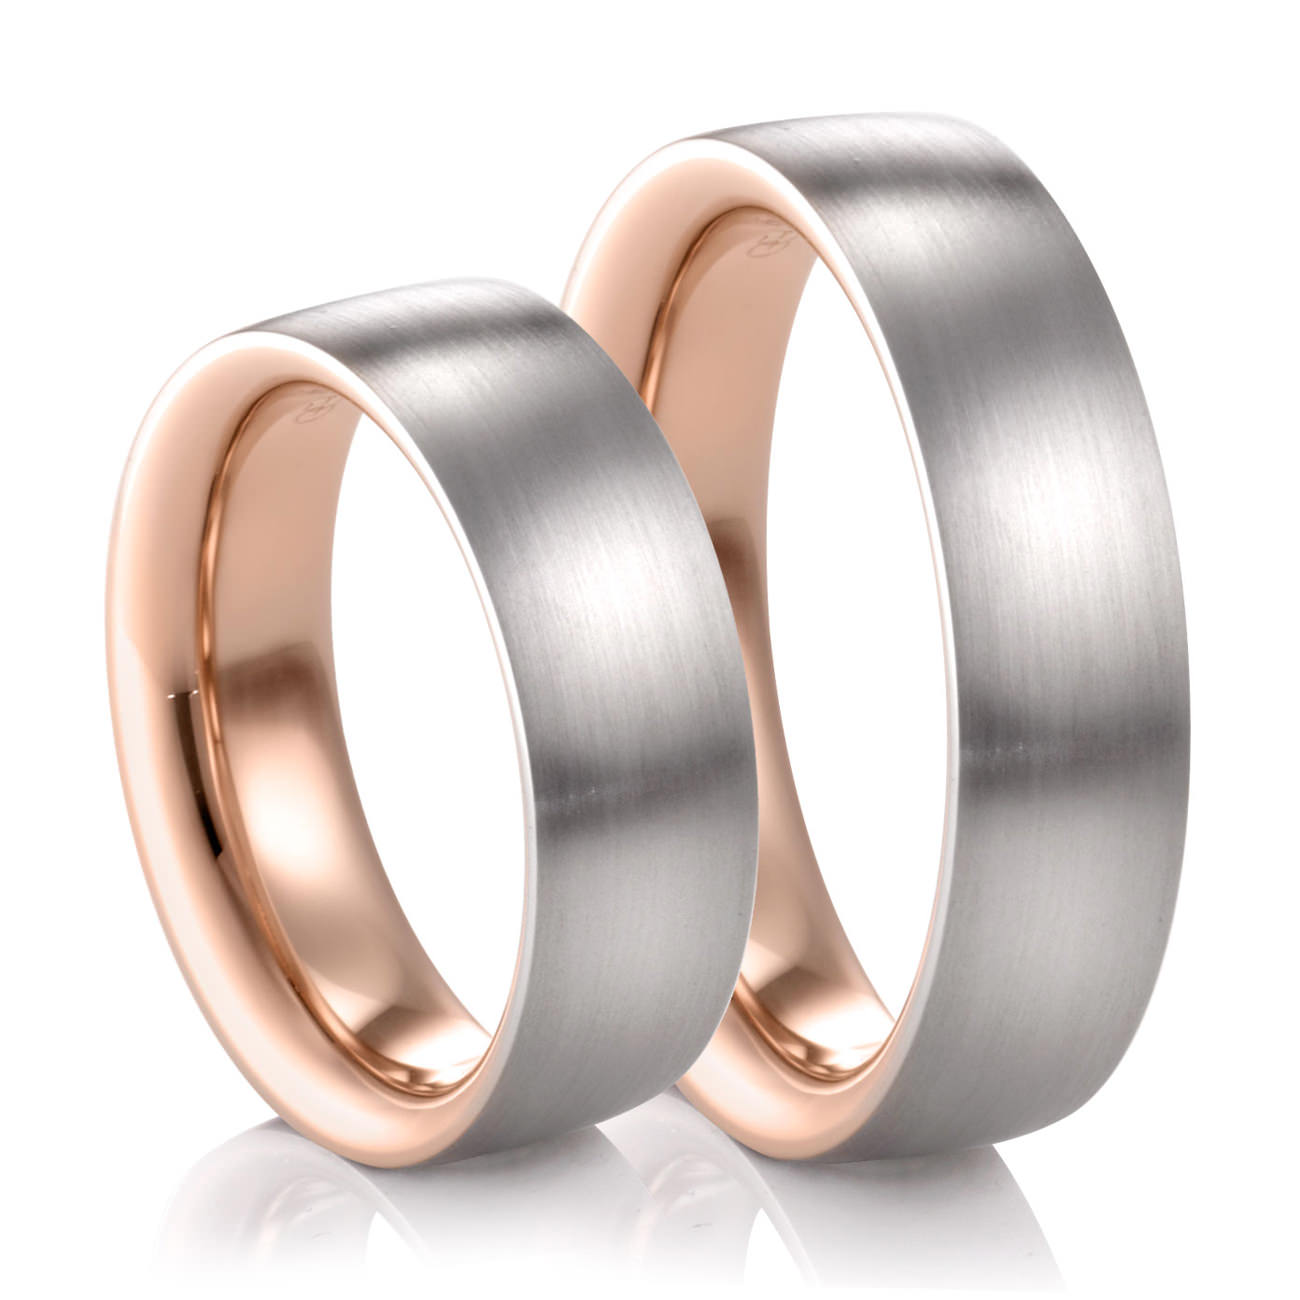 Platinum his and hers wedding rings wedding bands his - Platinum His And Hers Wedding Rings Wedding Bands His 41